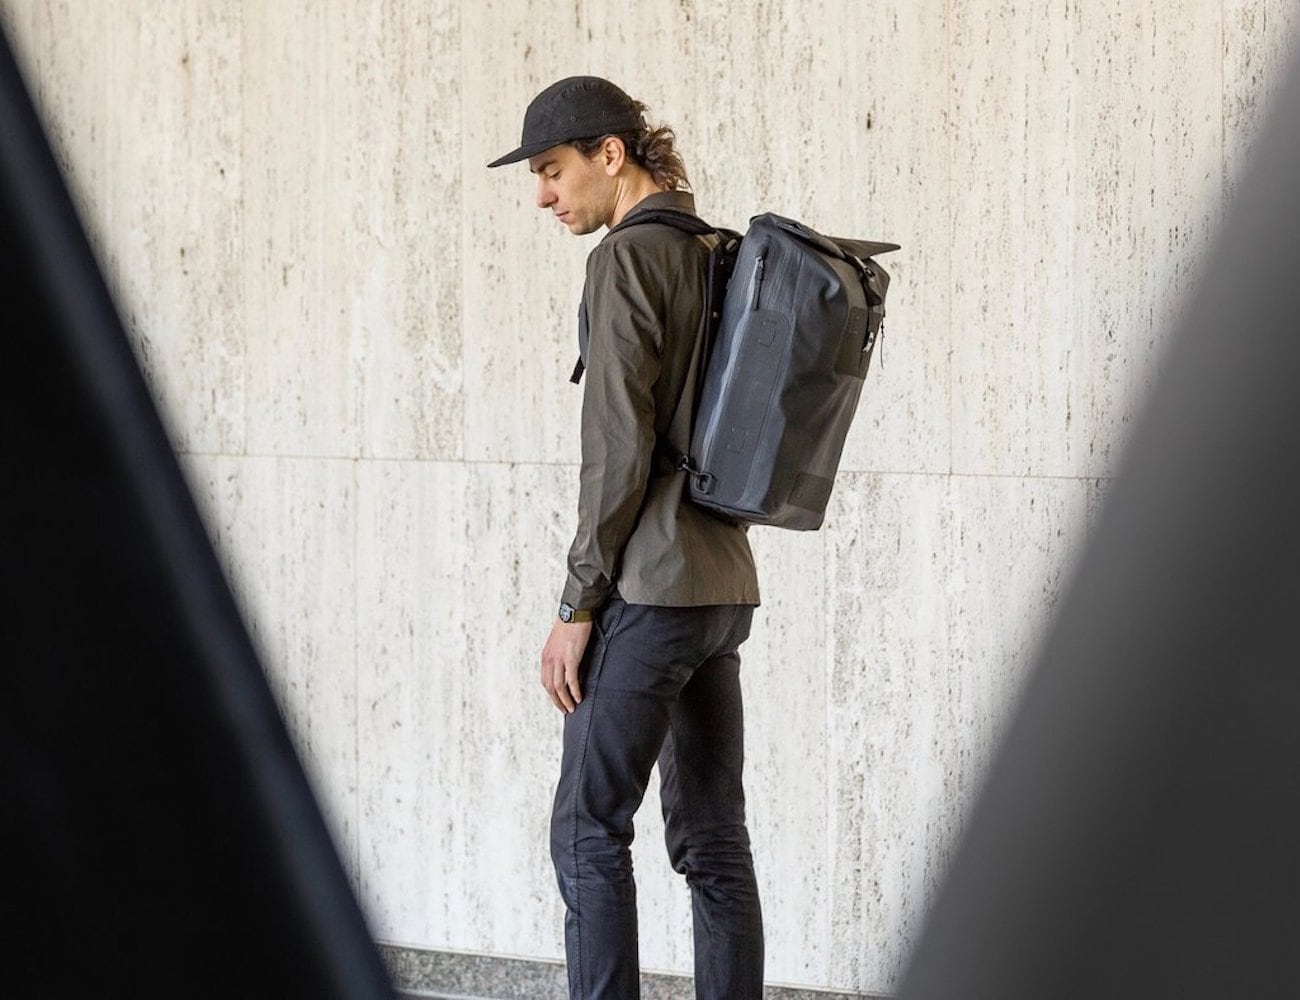 Black Ember WPRT MINIMAL waterproof roll top backpack protects your gear on the go